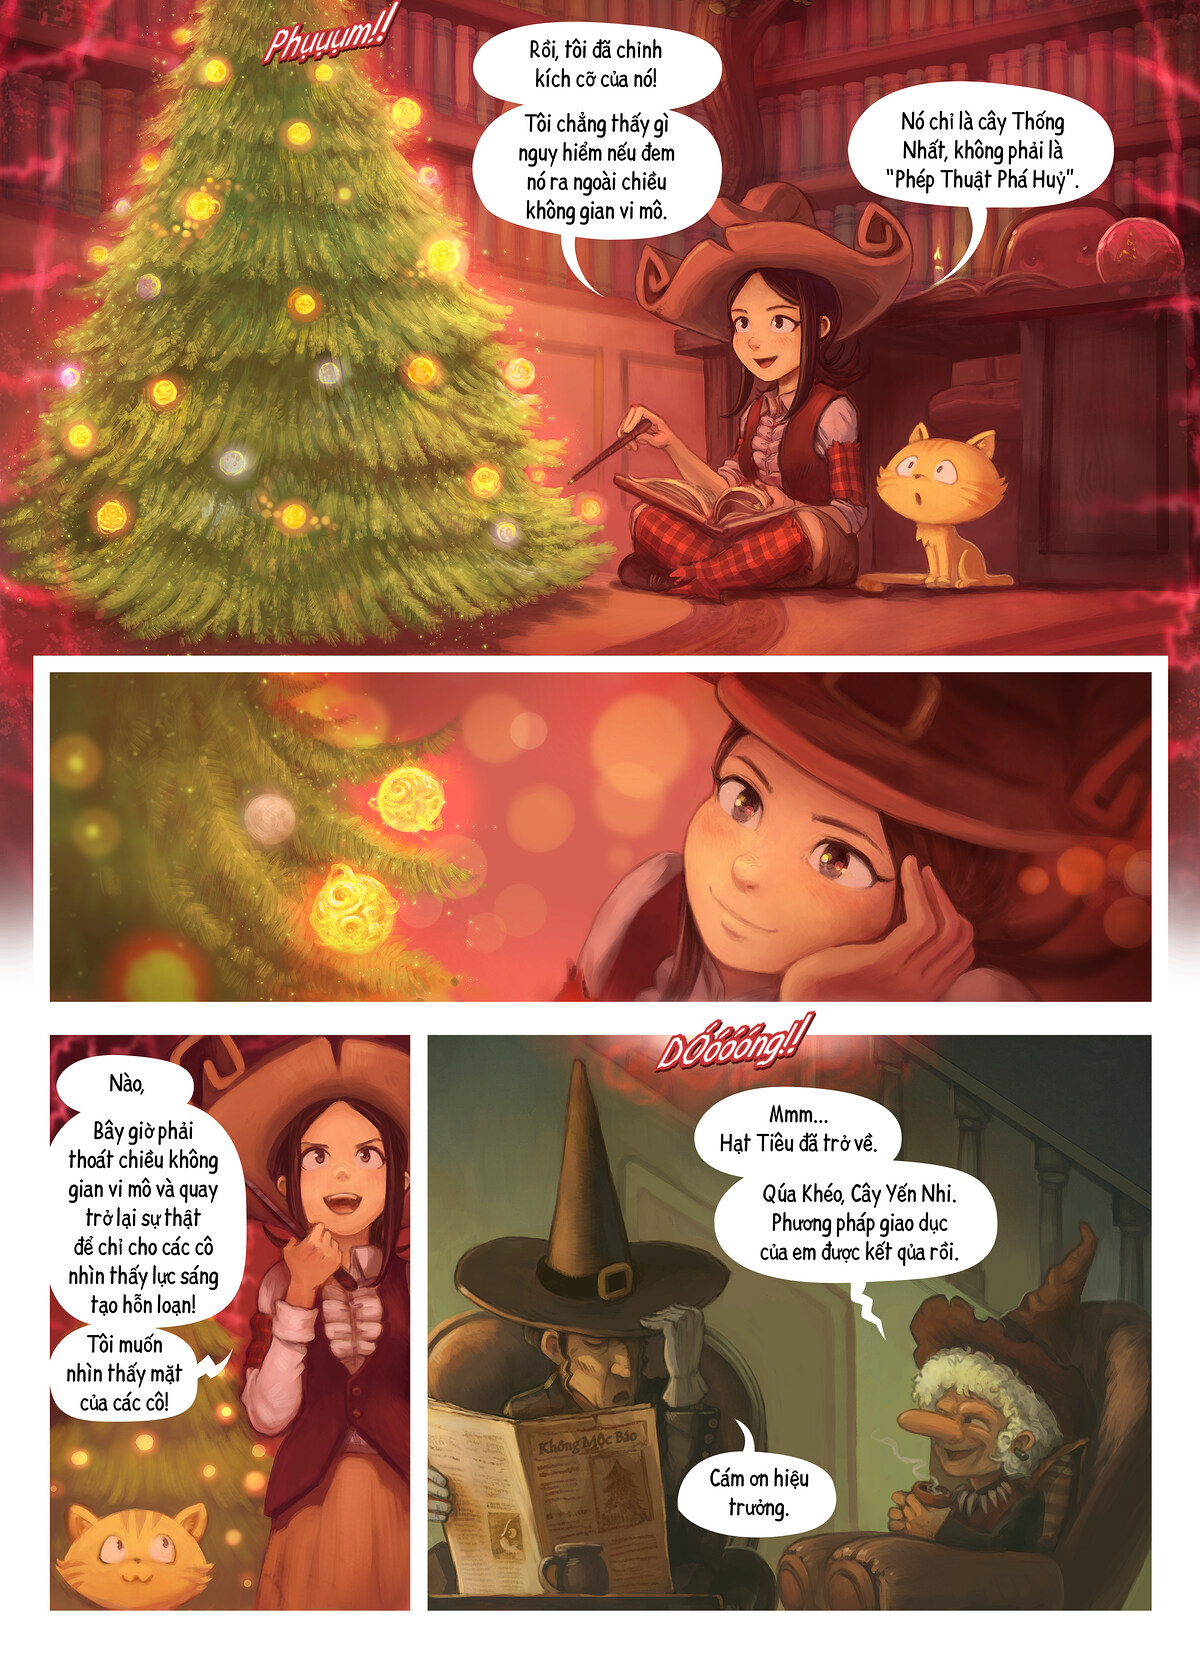 A webcomic page of Pepper&Carrot, Tập 24 [vi], trang 5